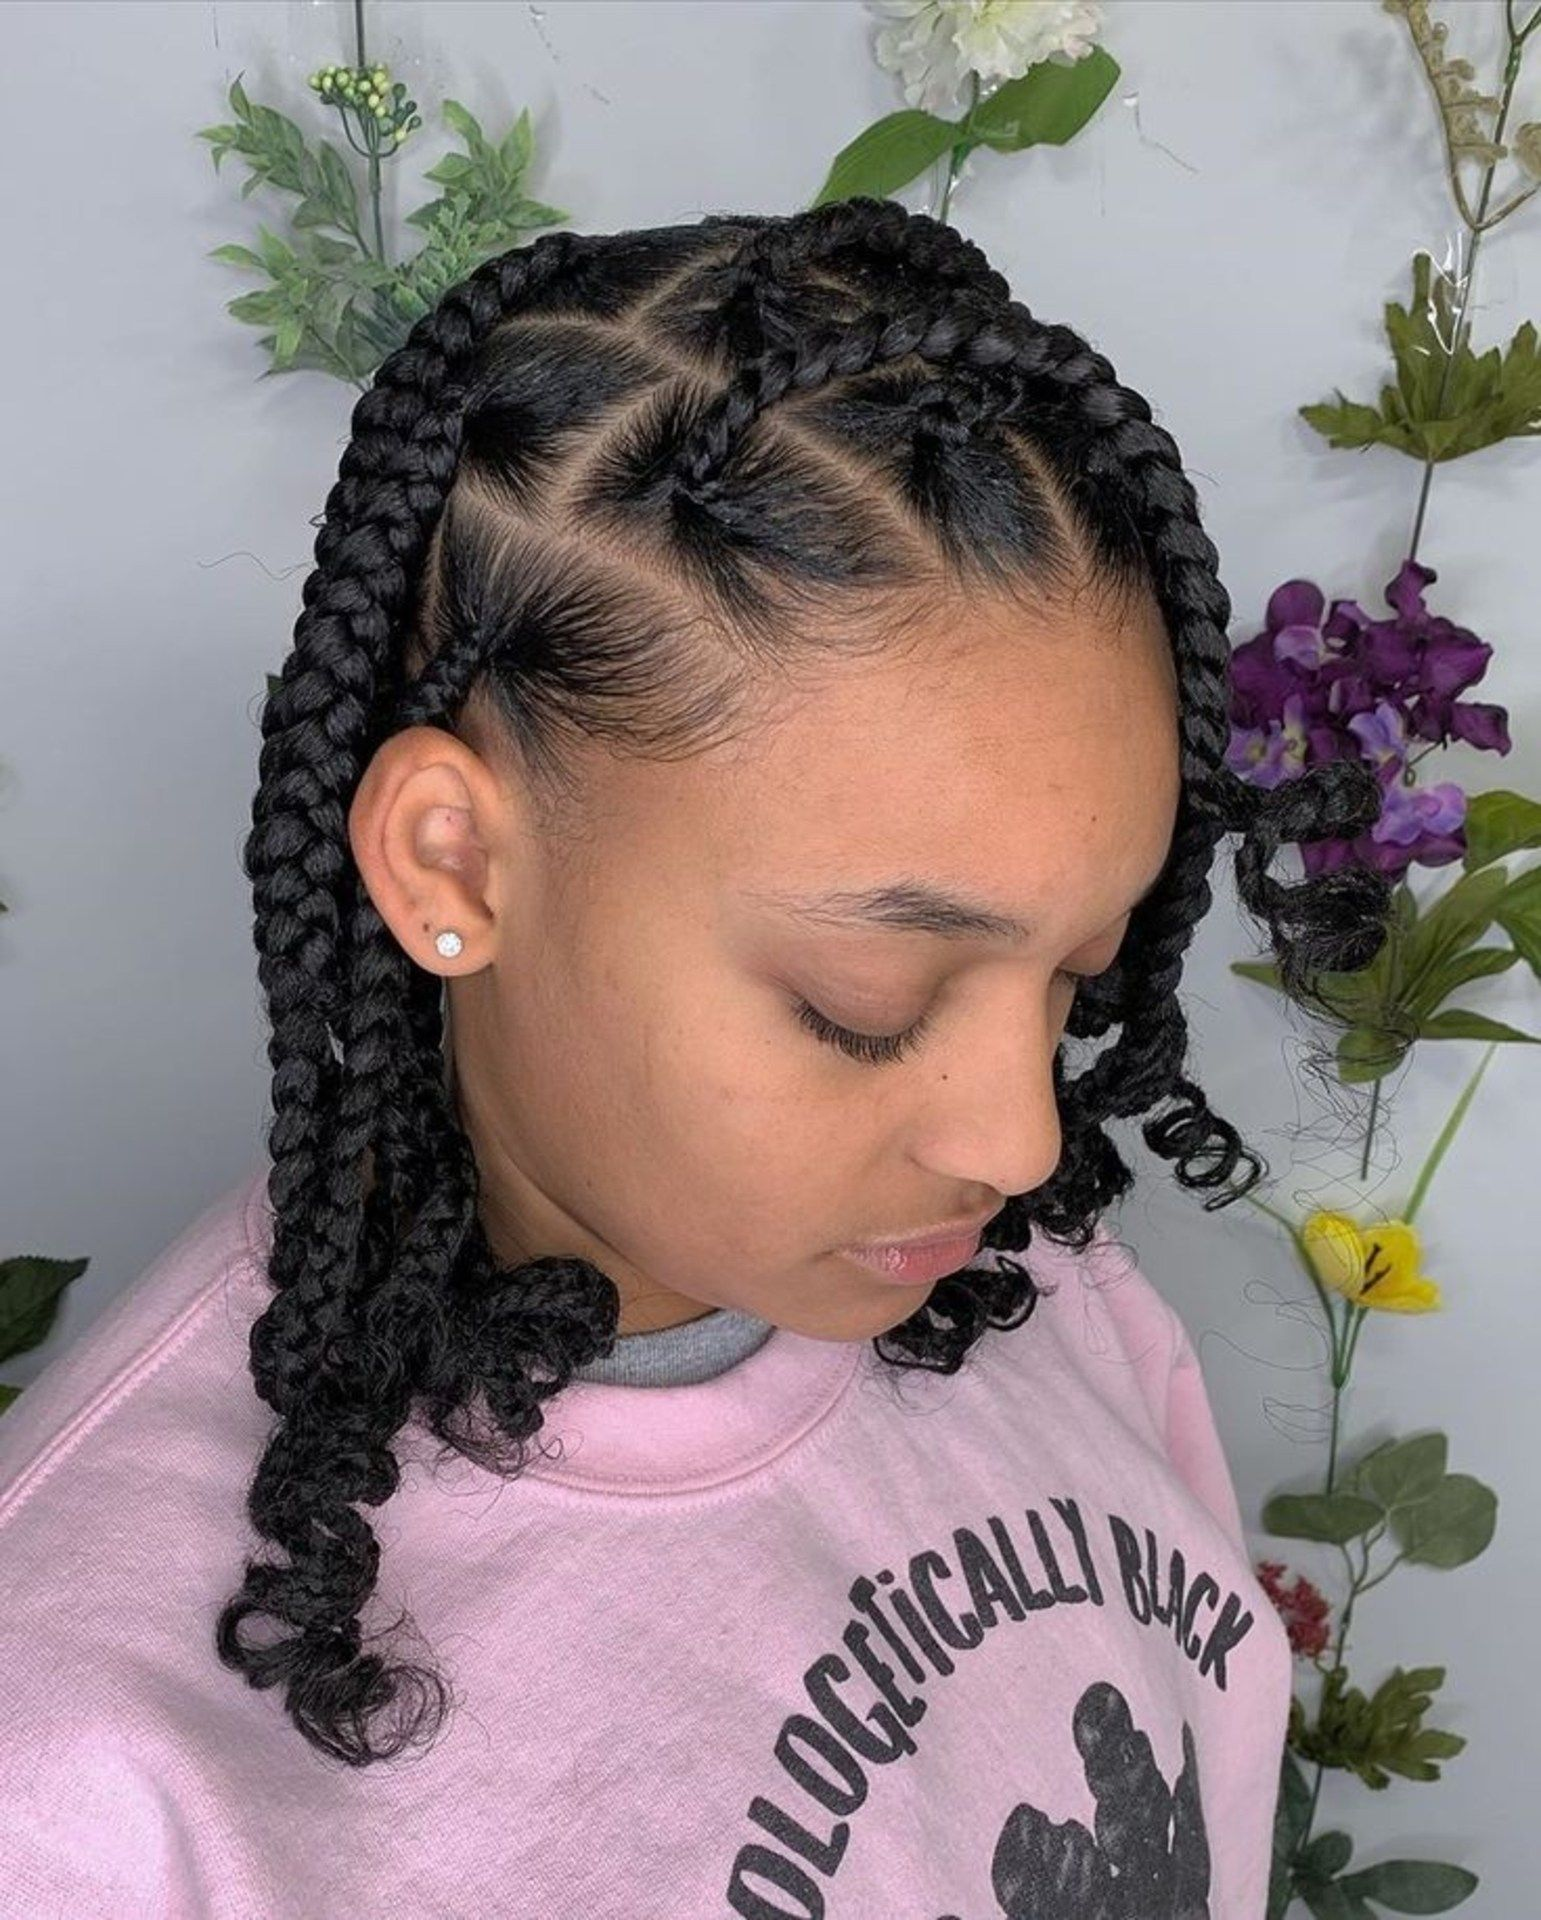 14 Inches Goddess Box Braids Natural Hair Braids Natural Hair Styles Natural Hair Styles Easy